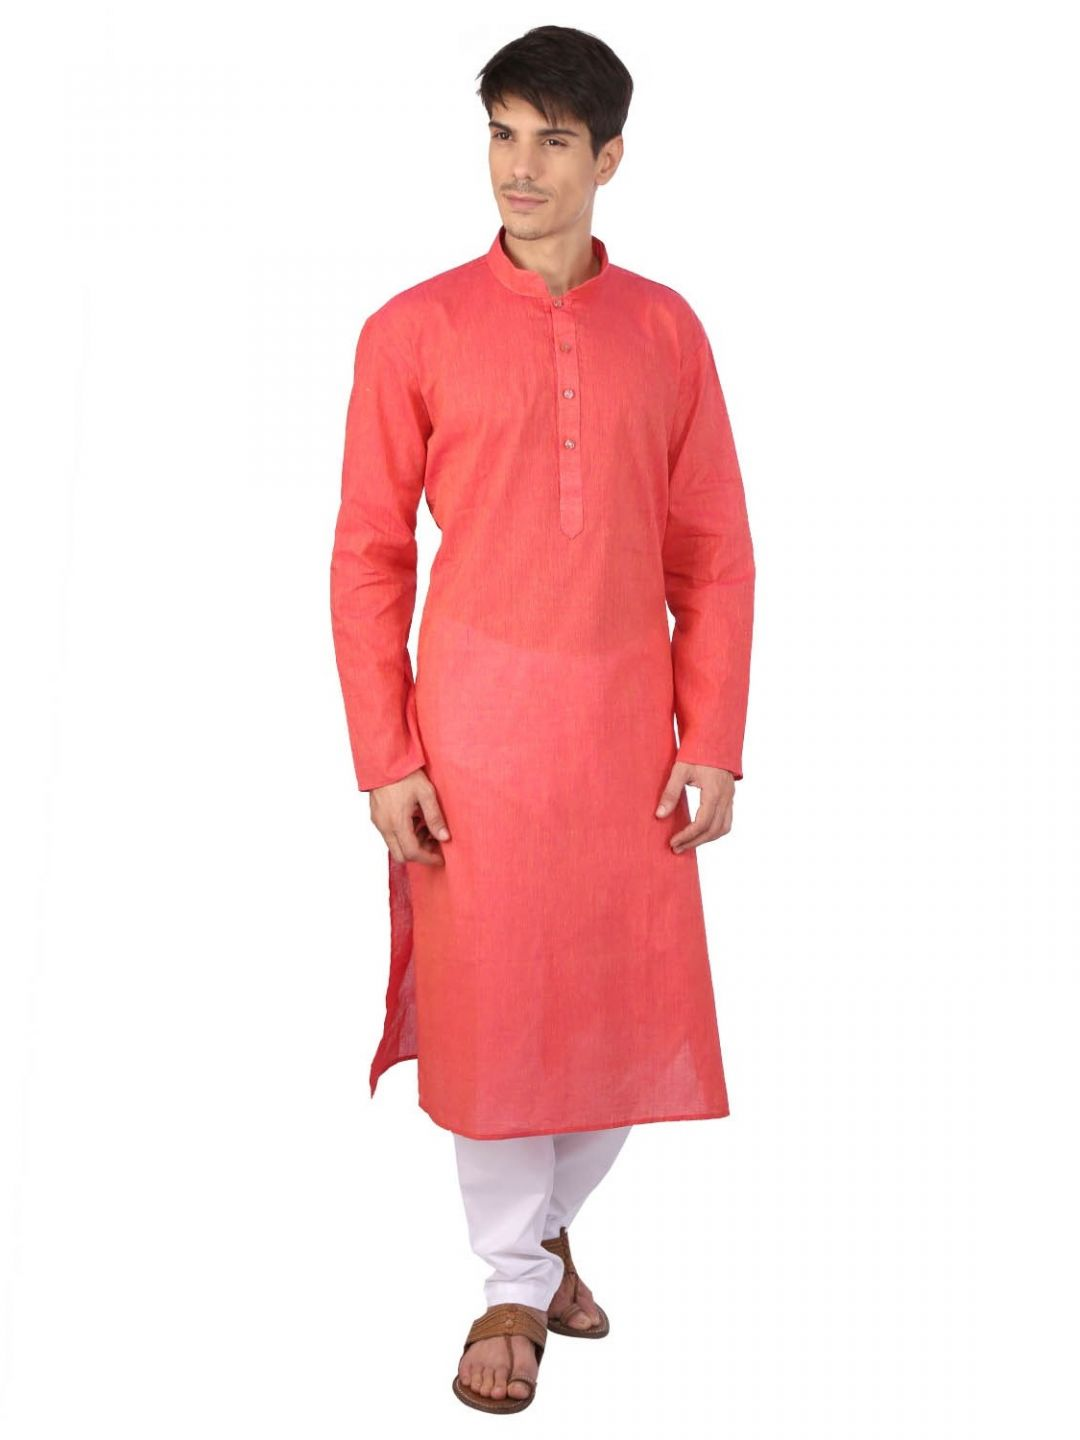 Rajubhai Hargovindas Light Red Cotton Long Kurta